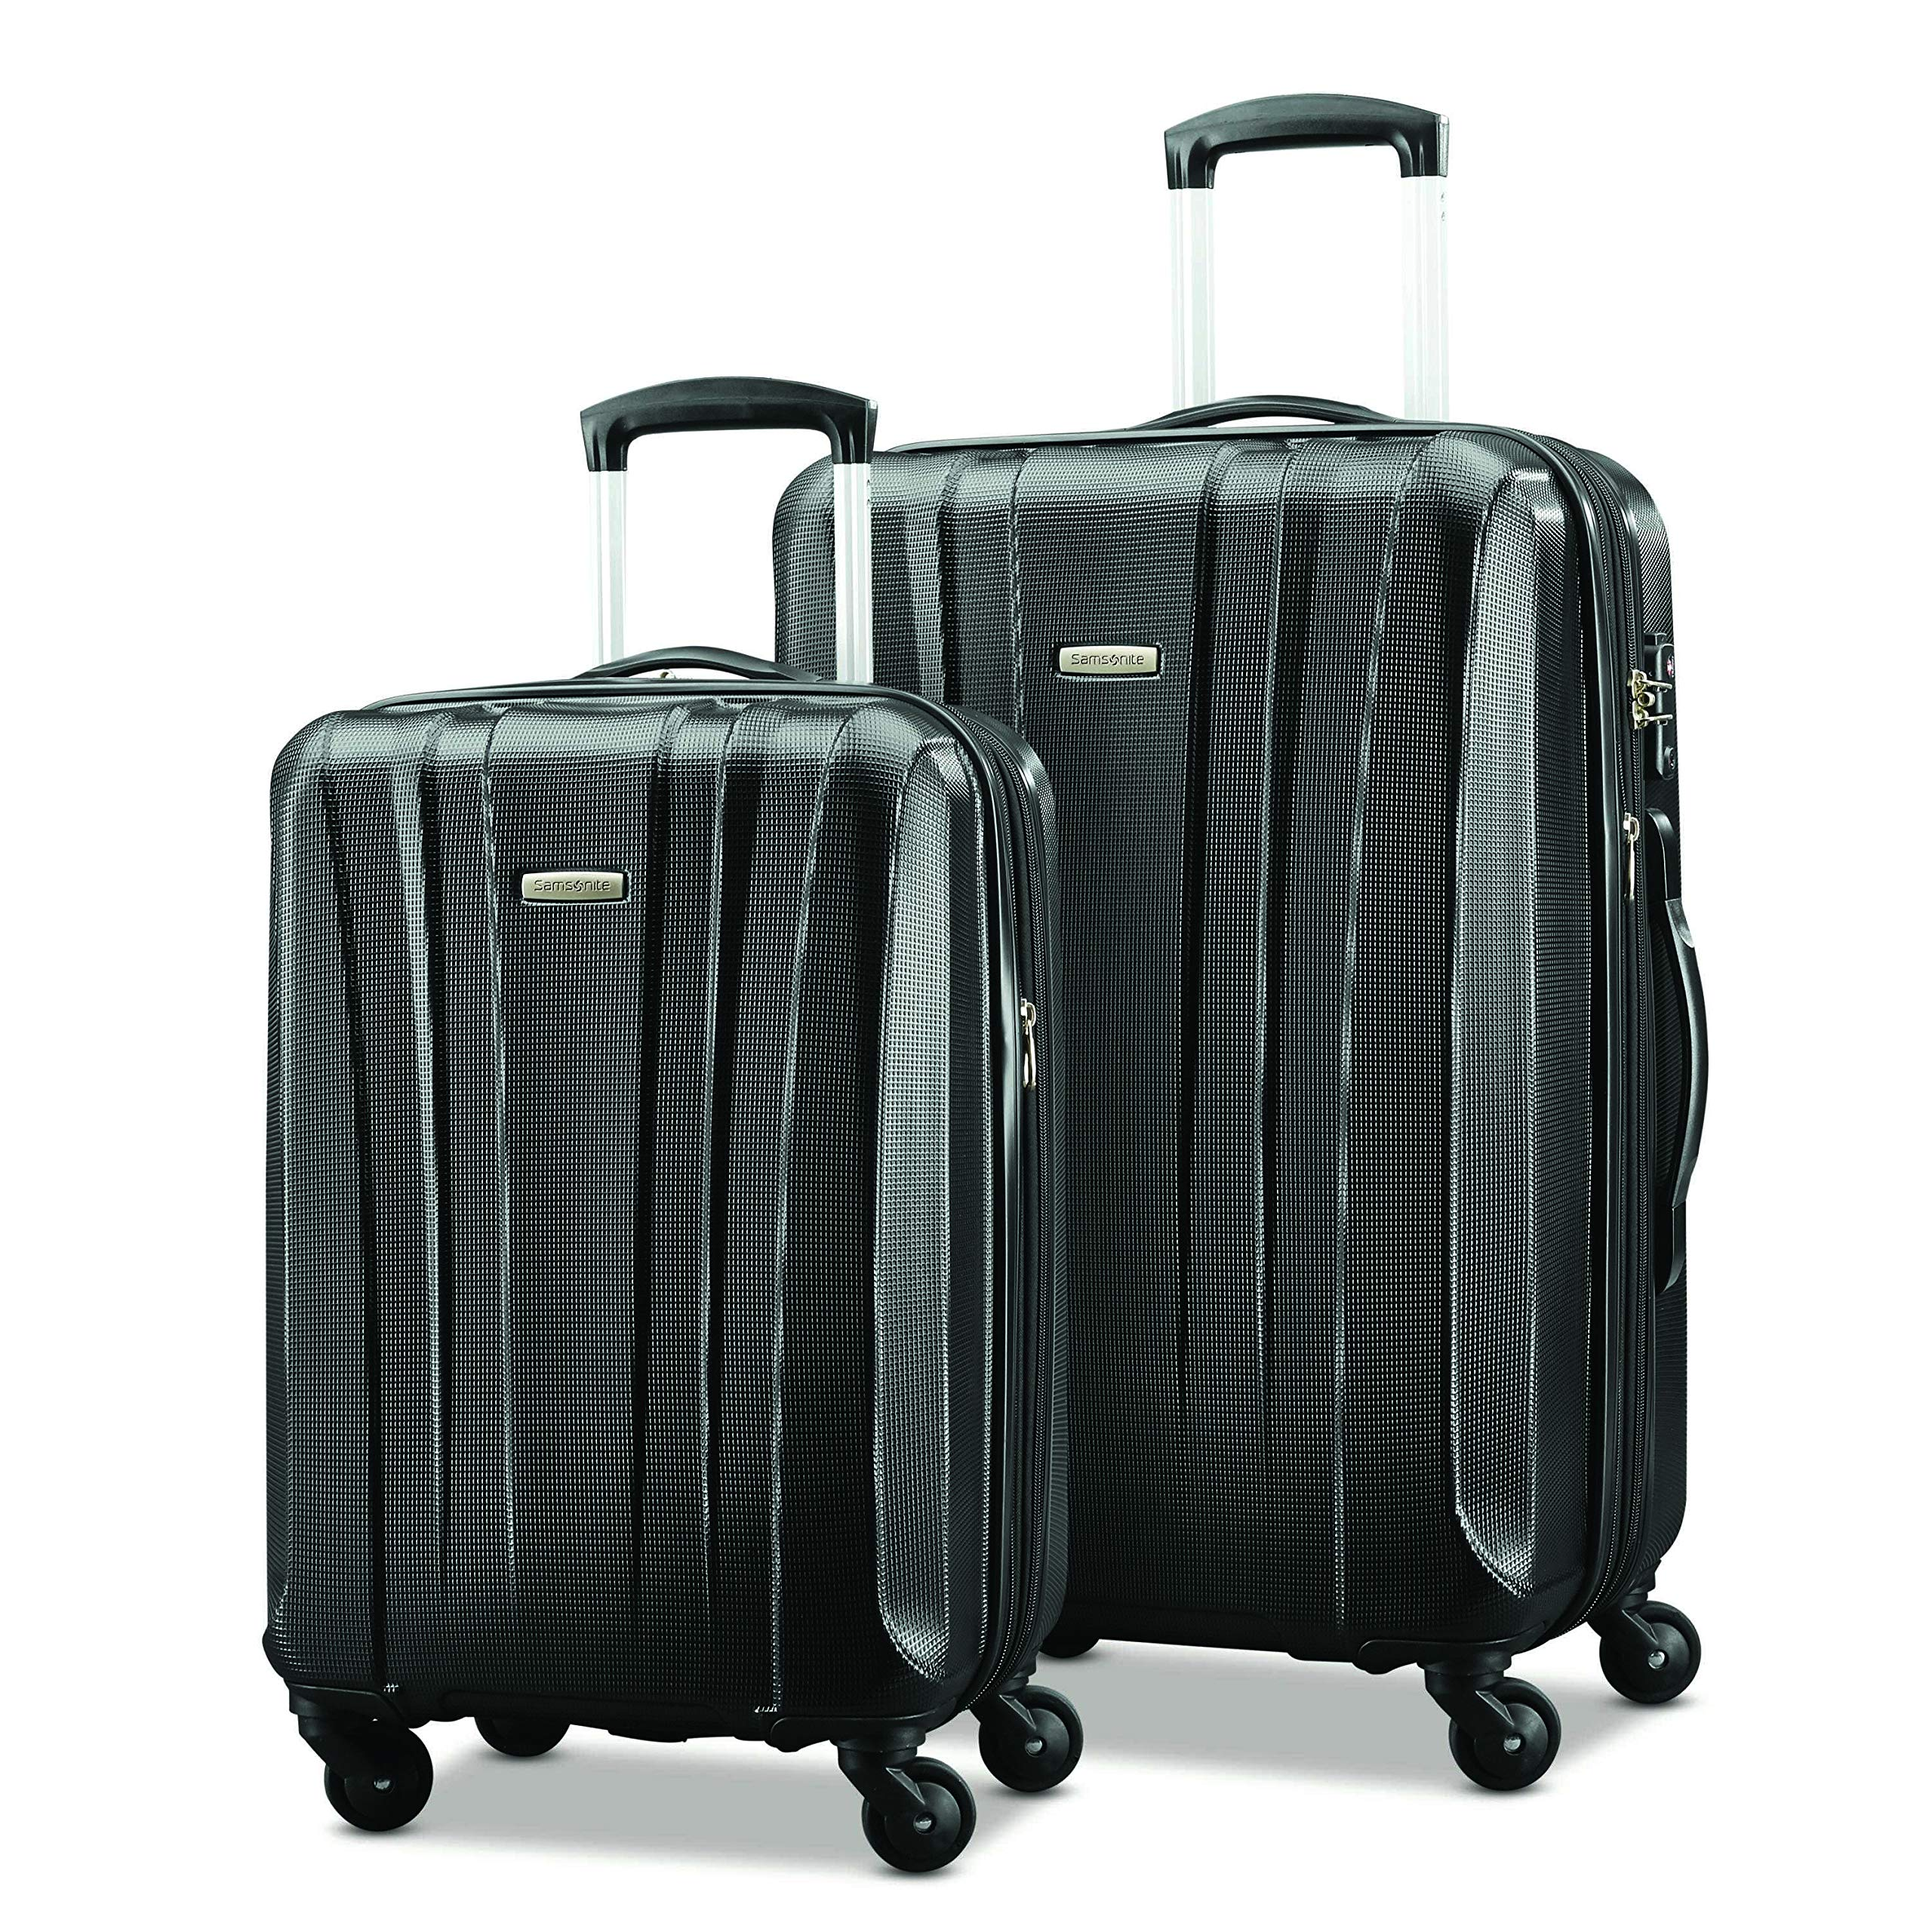 Samsonite Pulse Dlx Lightweight 2 Piece Hardside Set (20''/28''), Black, Exclusive to Amazon